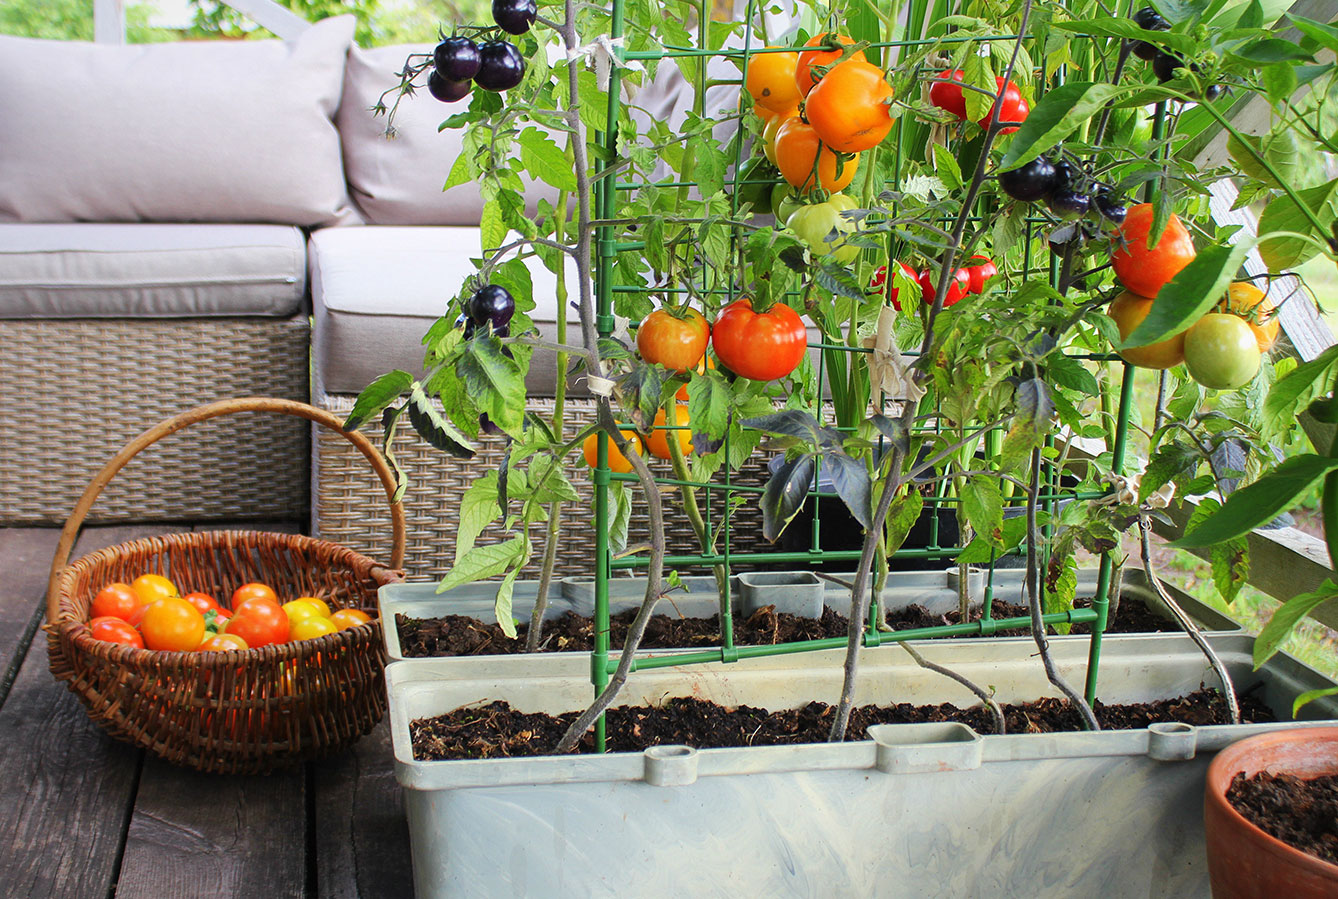 tomatoes in planters